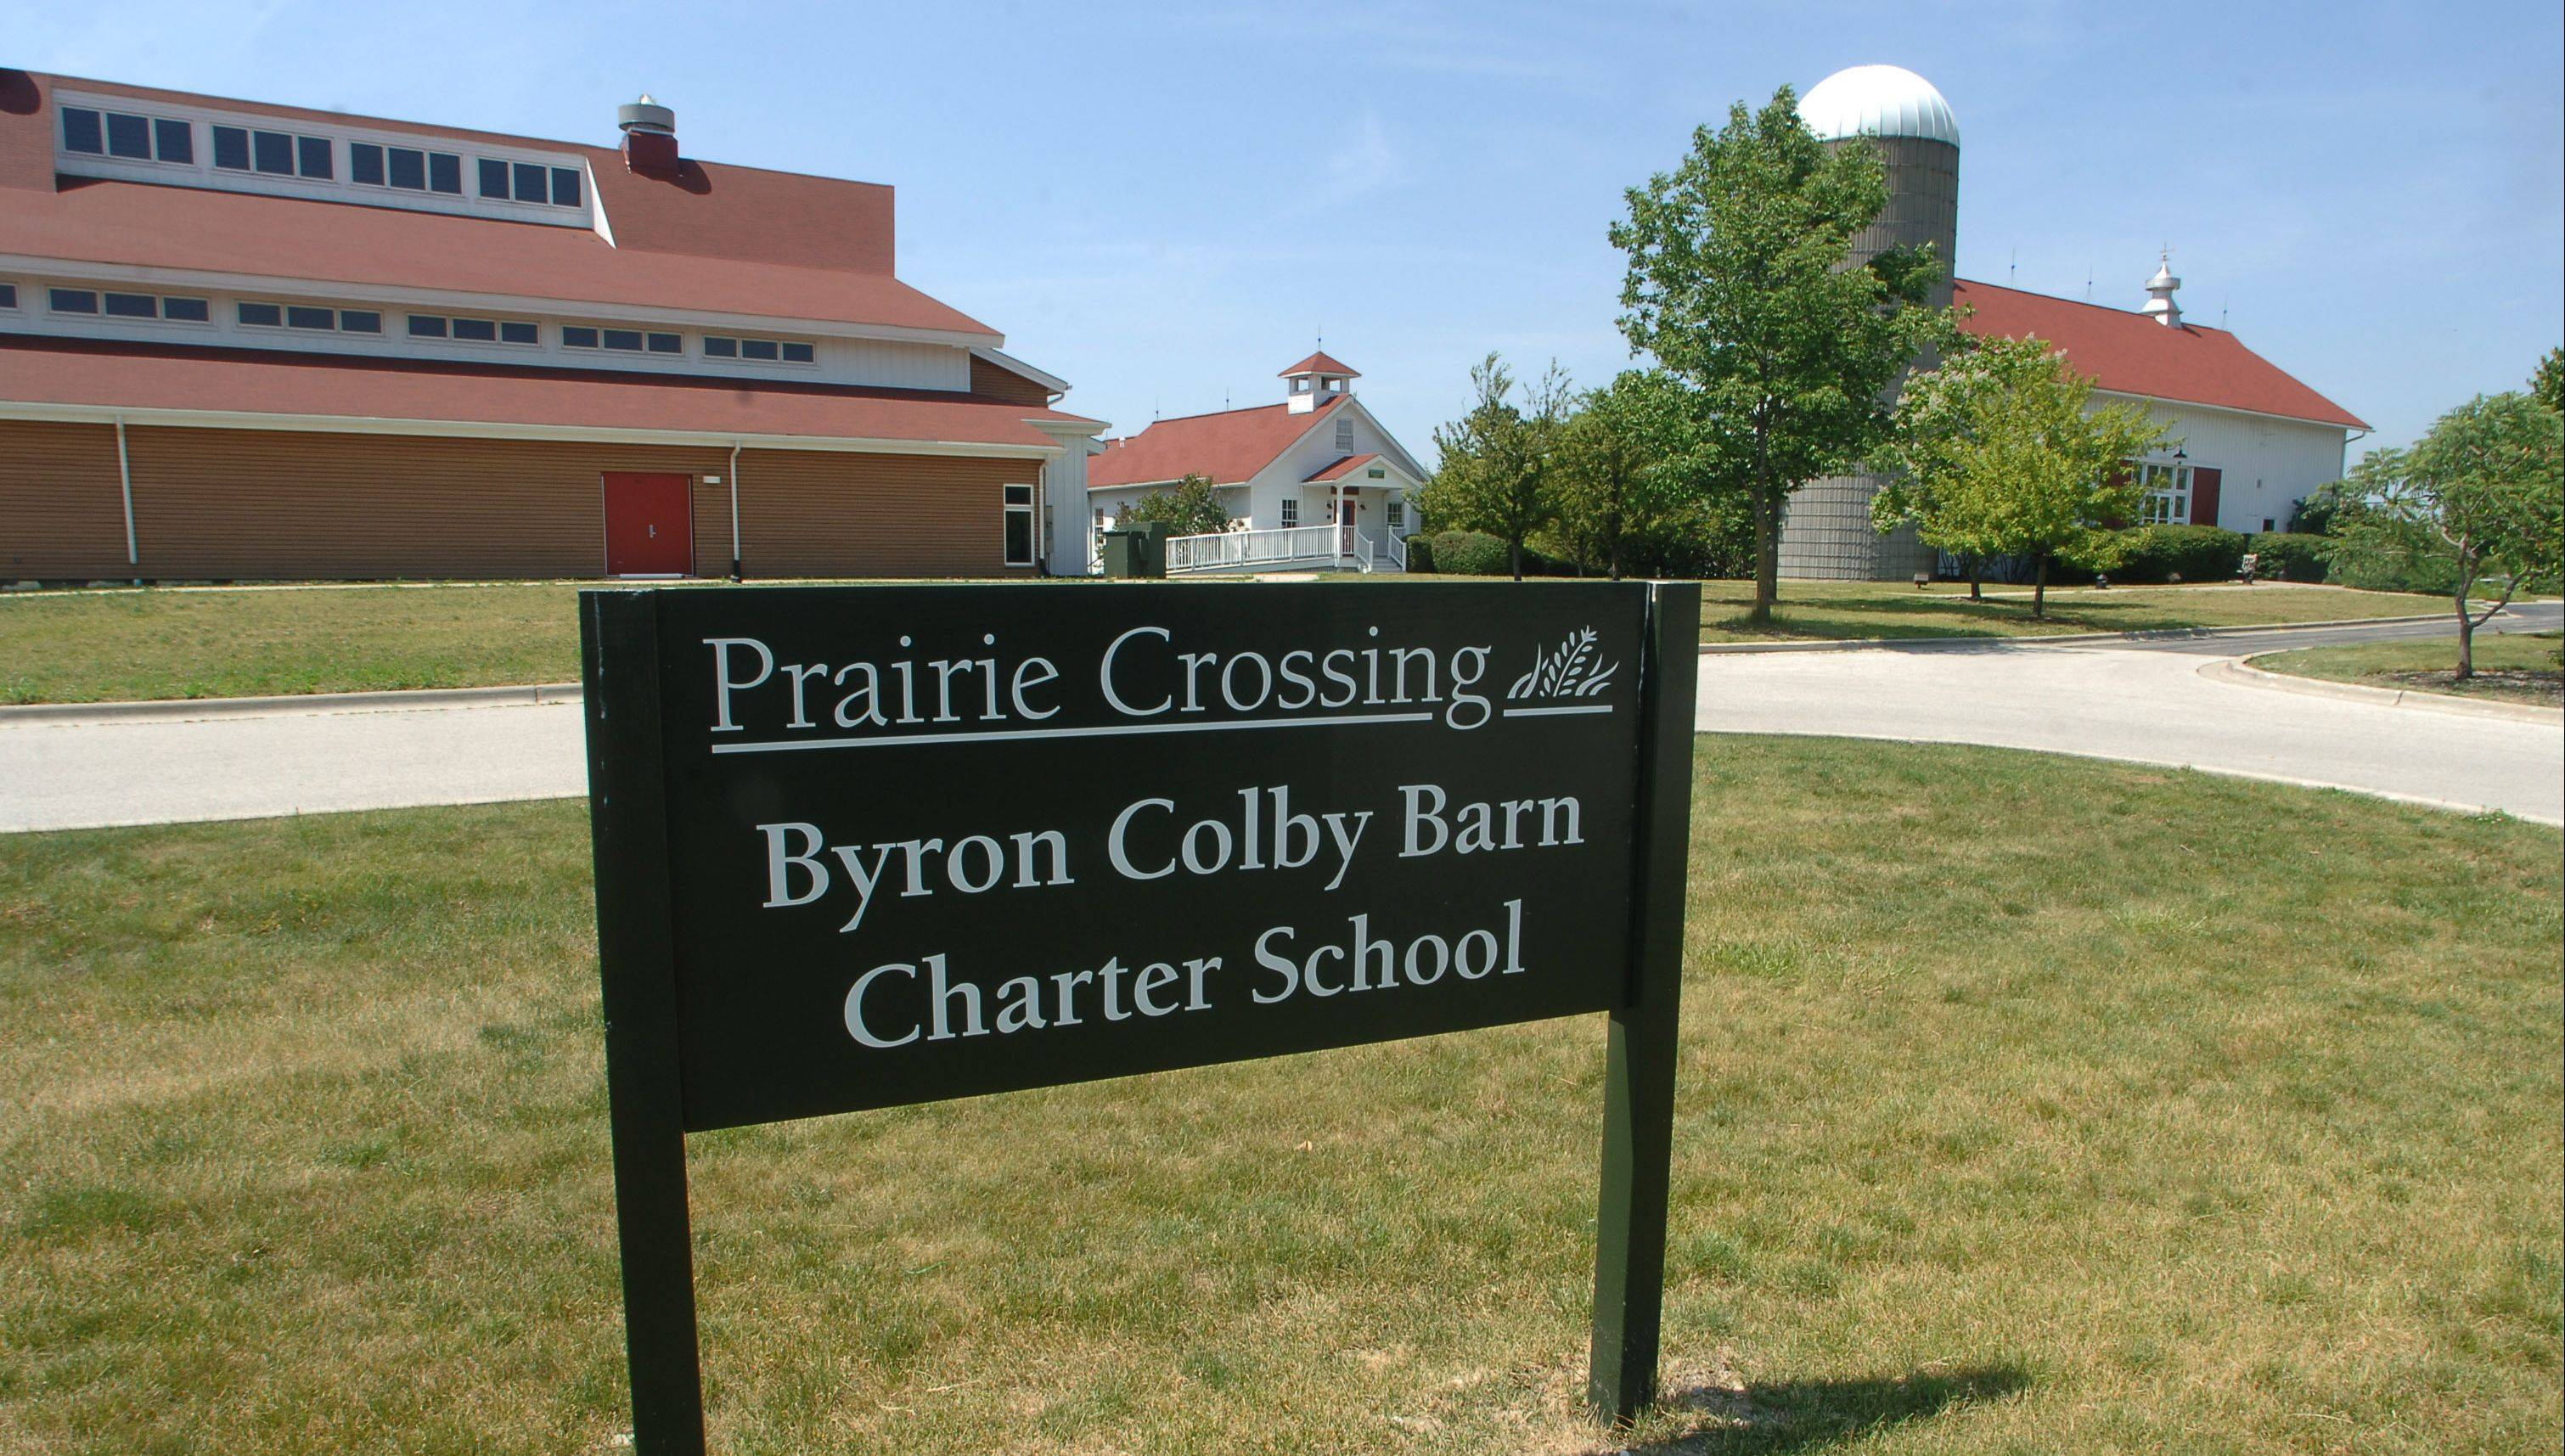 Prairie Crossing Charter School in Grayslake, near Byron Colby Barn, is a national Blue Ribbon Award of Excellence winner this year.